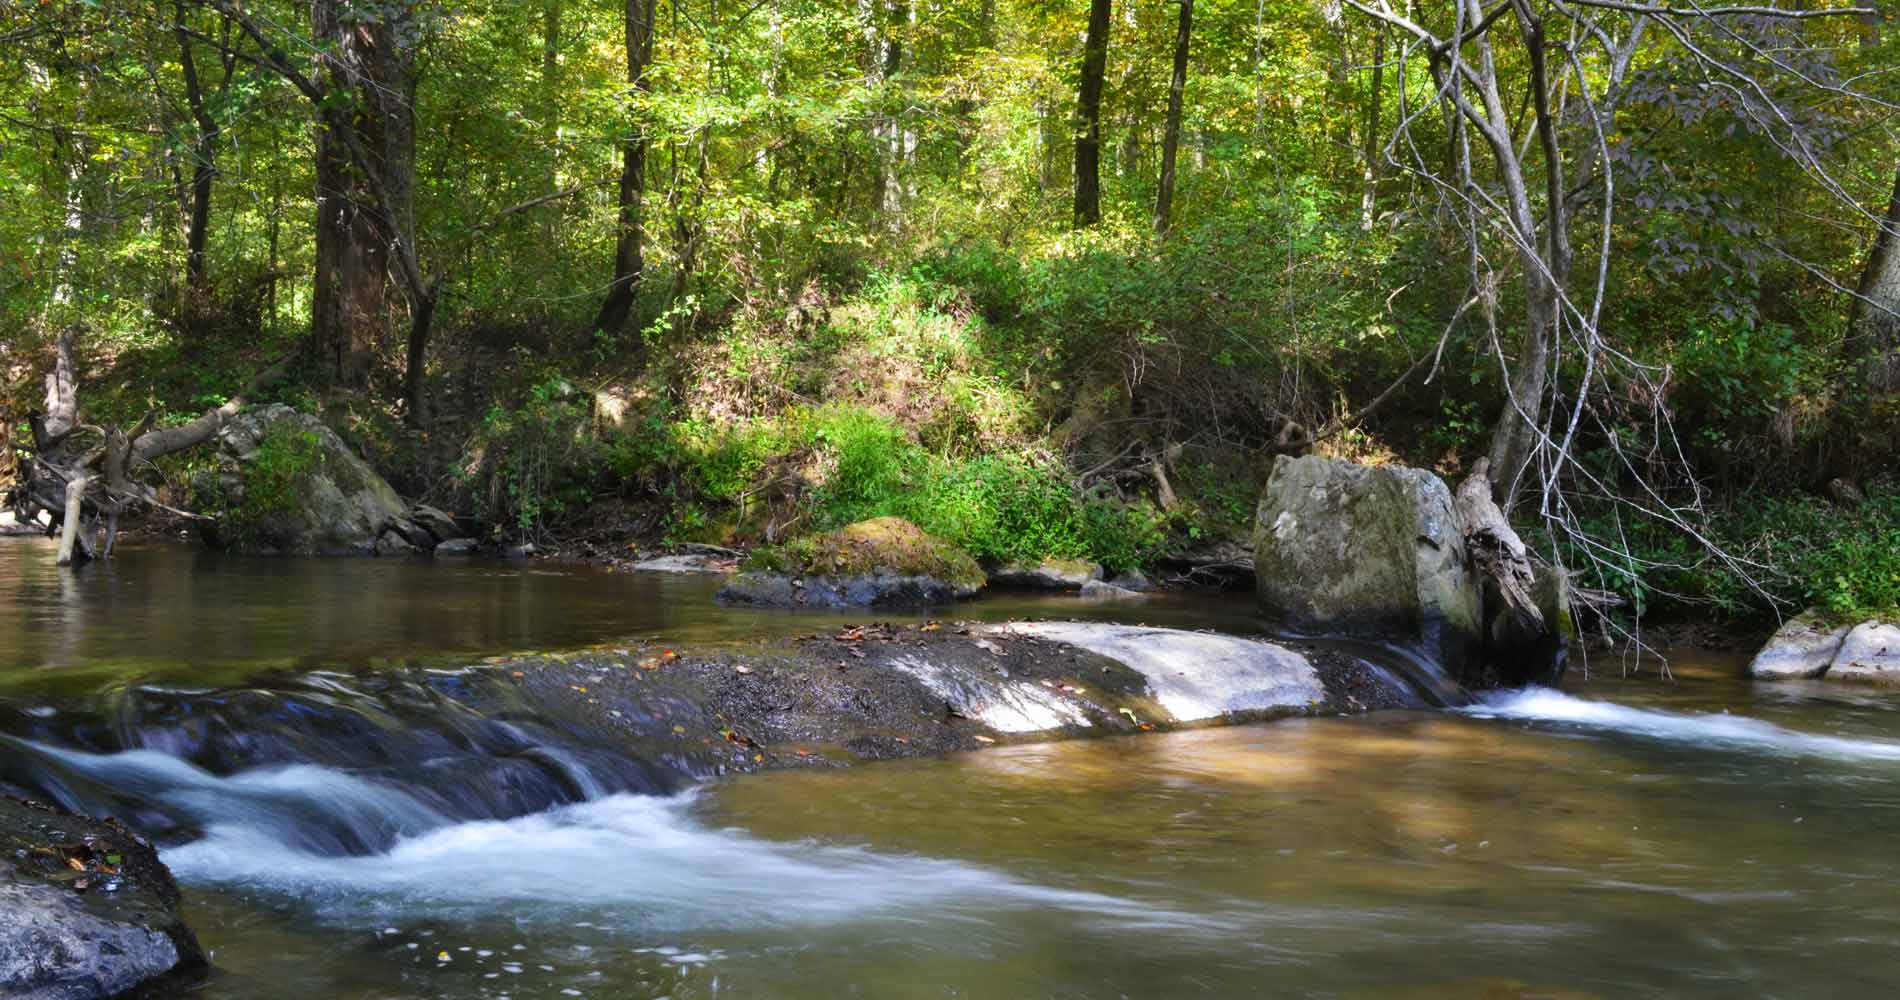 The Patuxent River State Park is the easiest hiking destination to reach in Maryland via MARC train service. (Image: Courtesy Find Your Chesapeake){ }